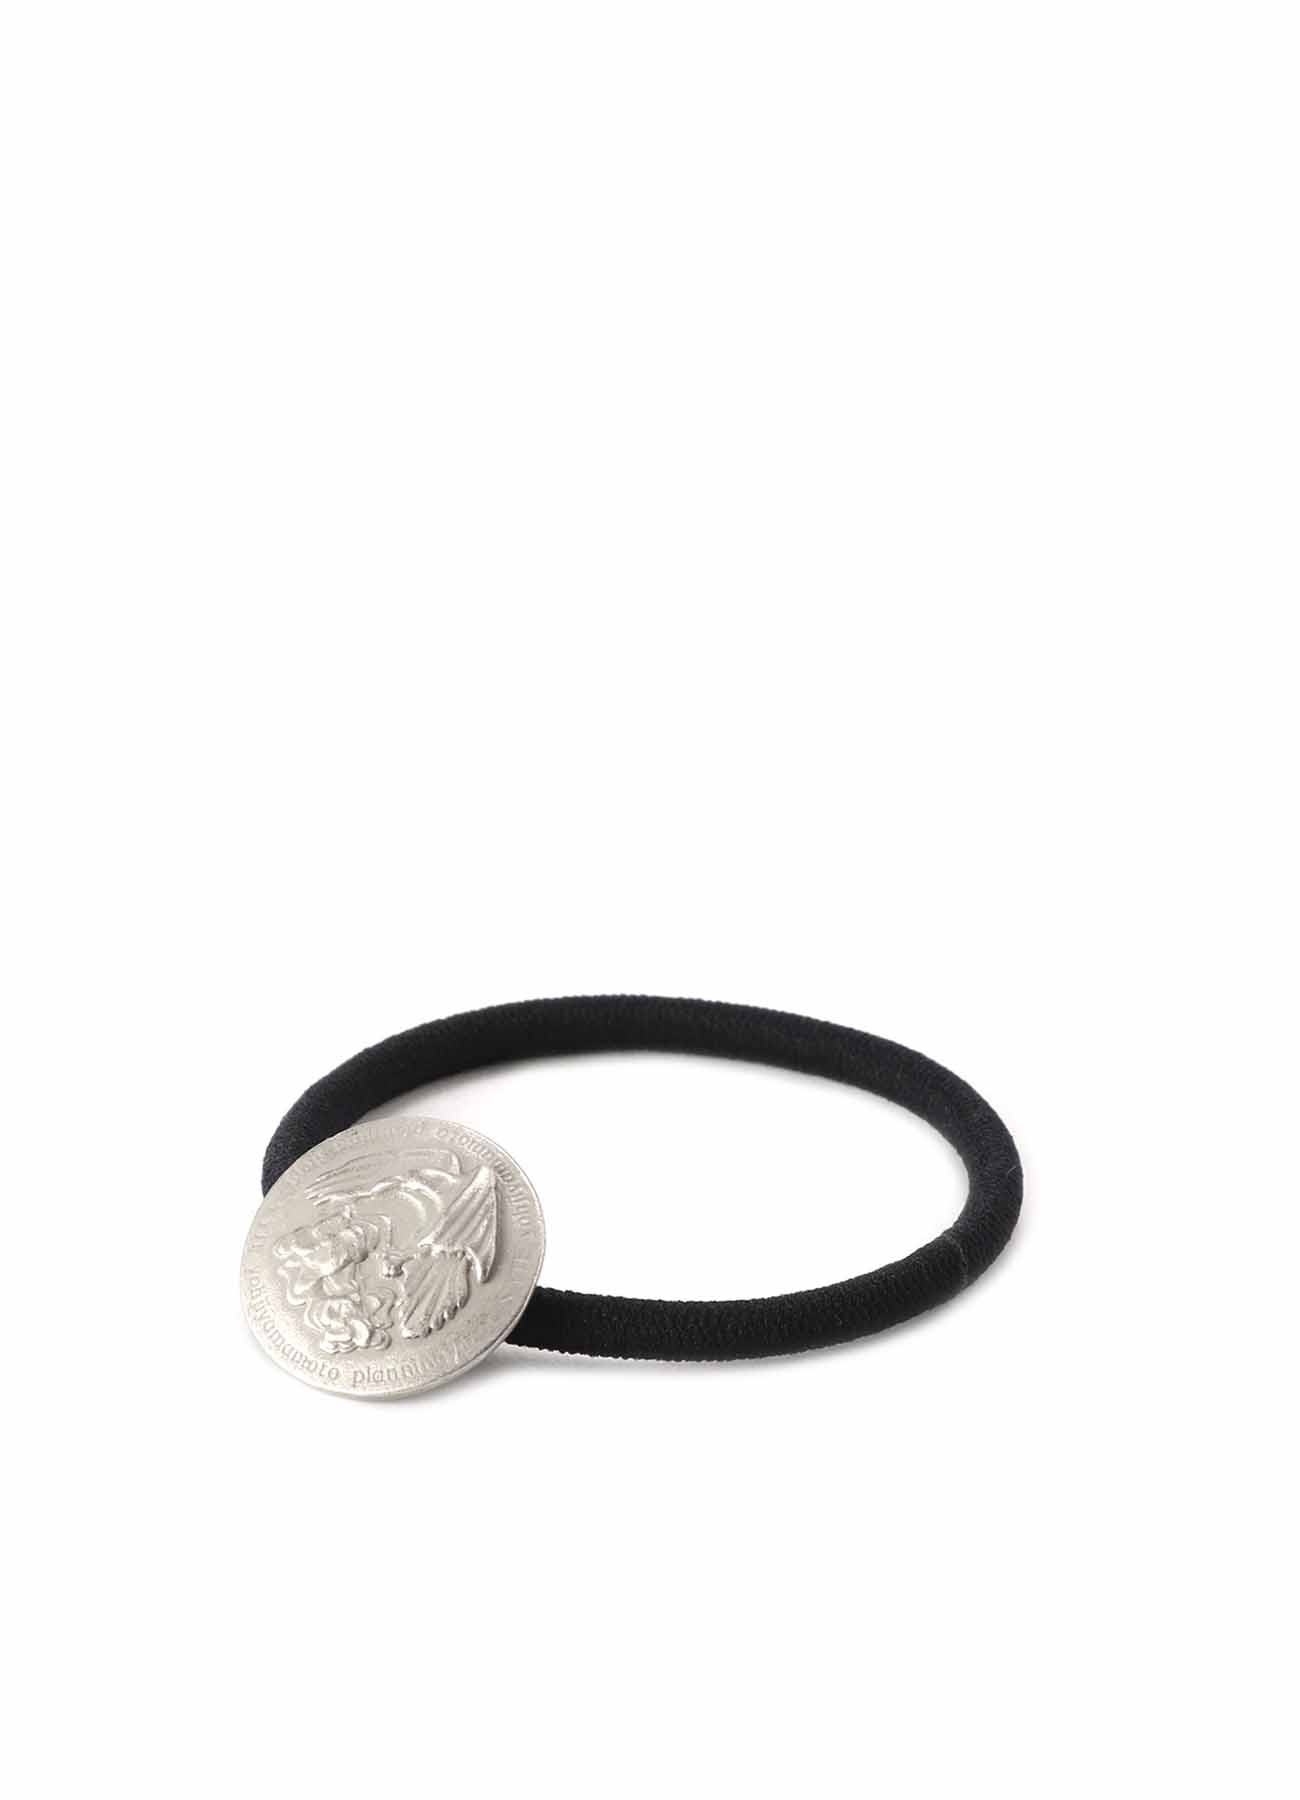 Crow Fower Concho Hair Tie